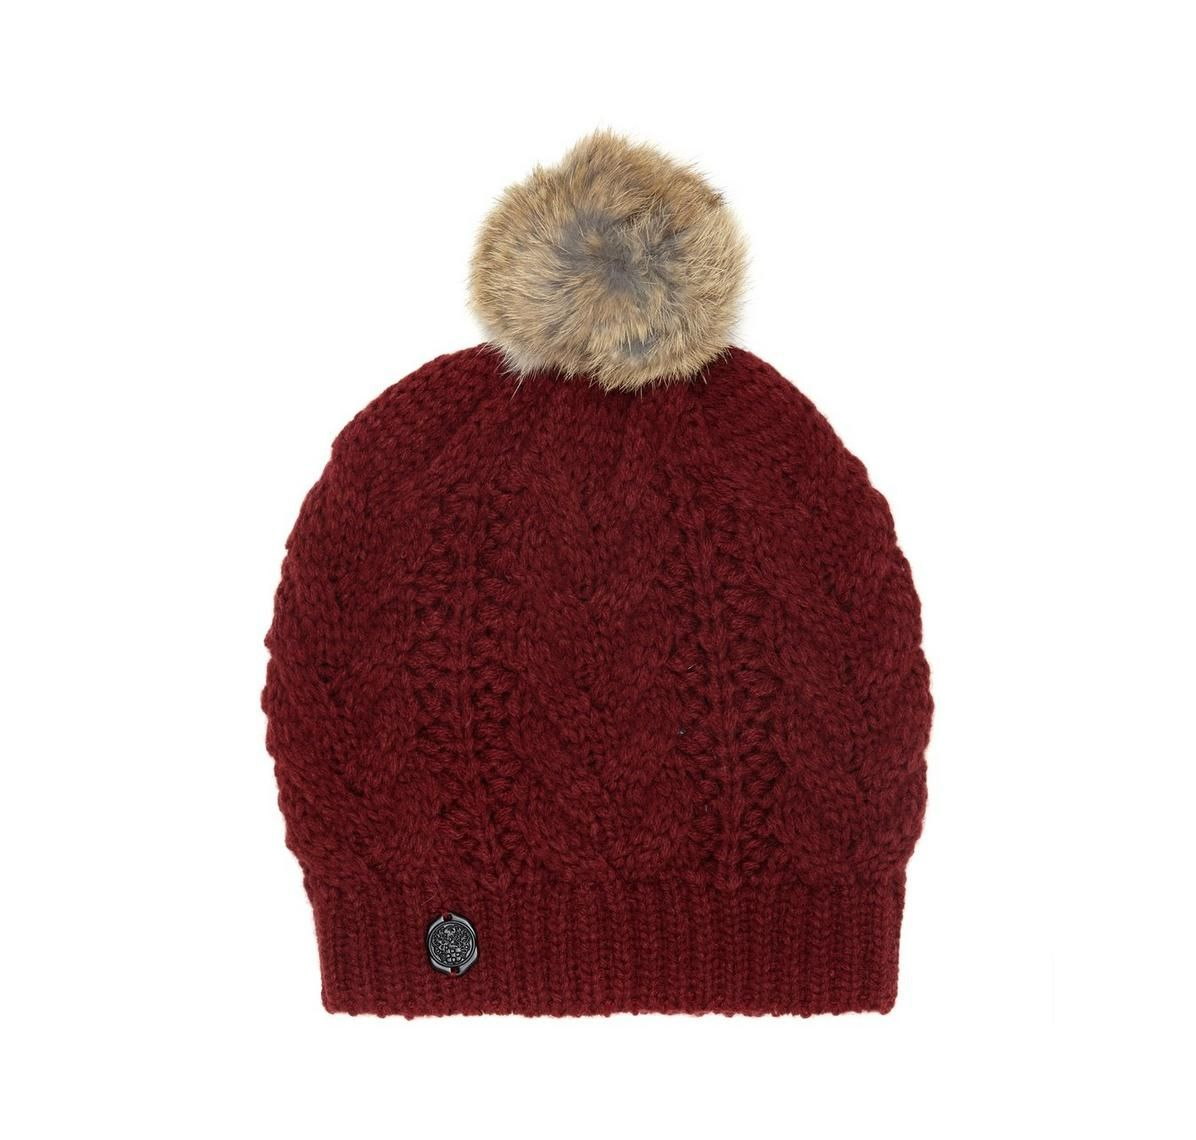 eb969e30006f1 Vince Camuto Cable-knit Pom Hat - Vince Camuto